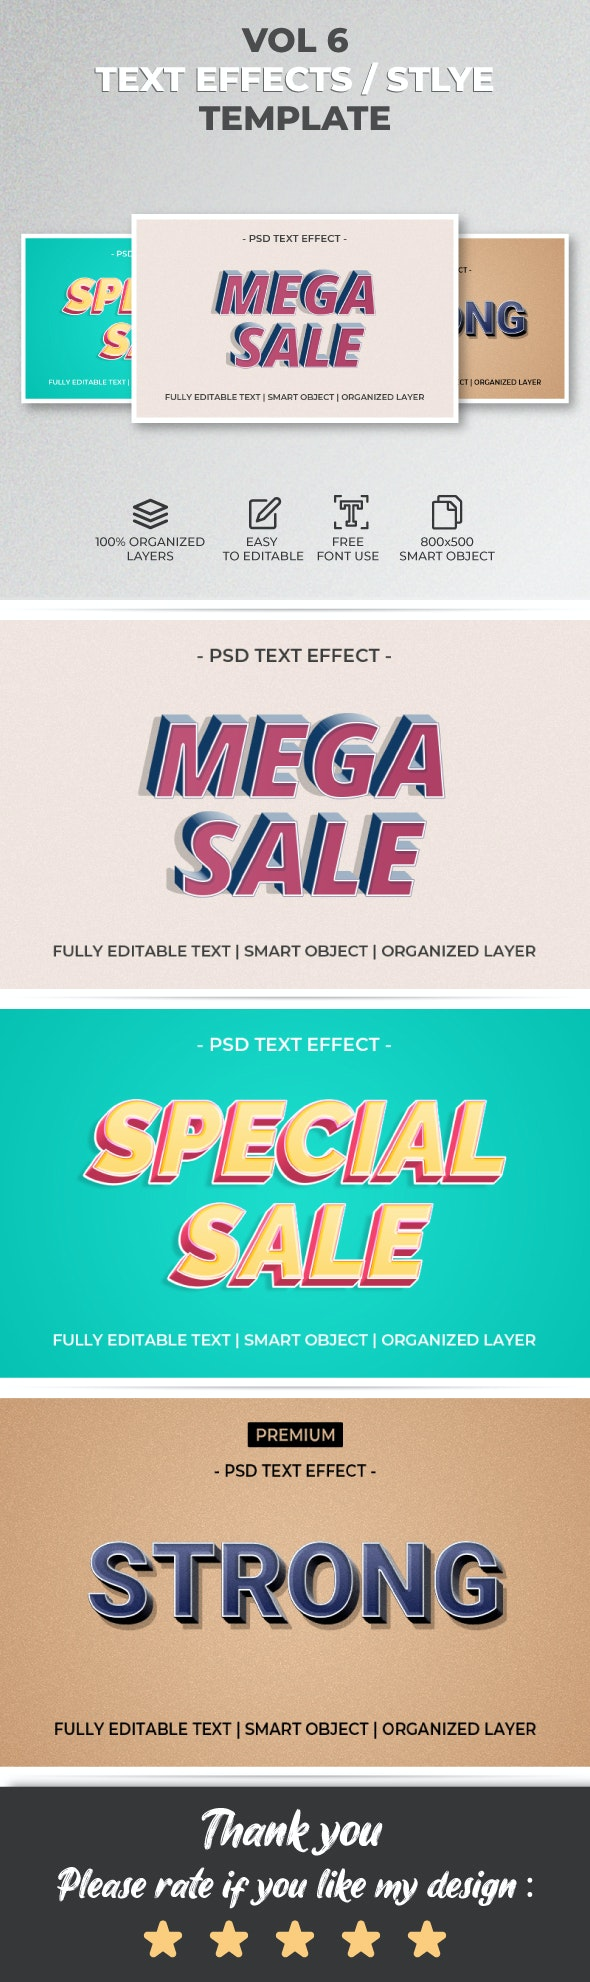 Text Effect Style Template Style Vol.6 - Text Effects Actions